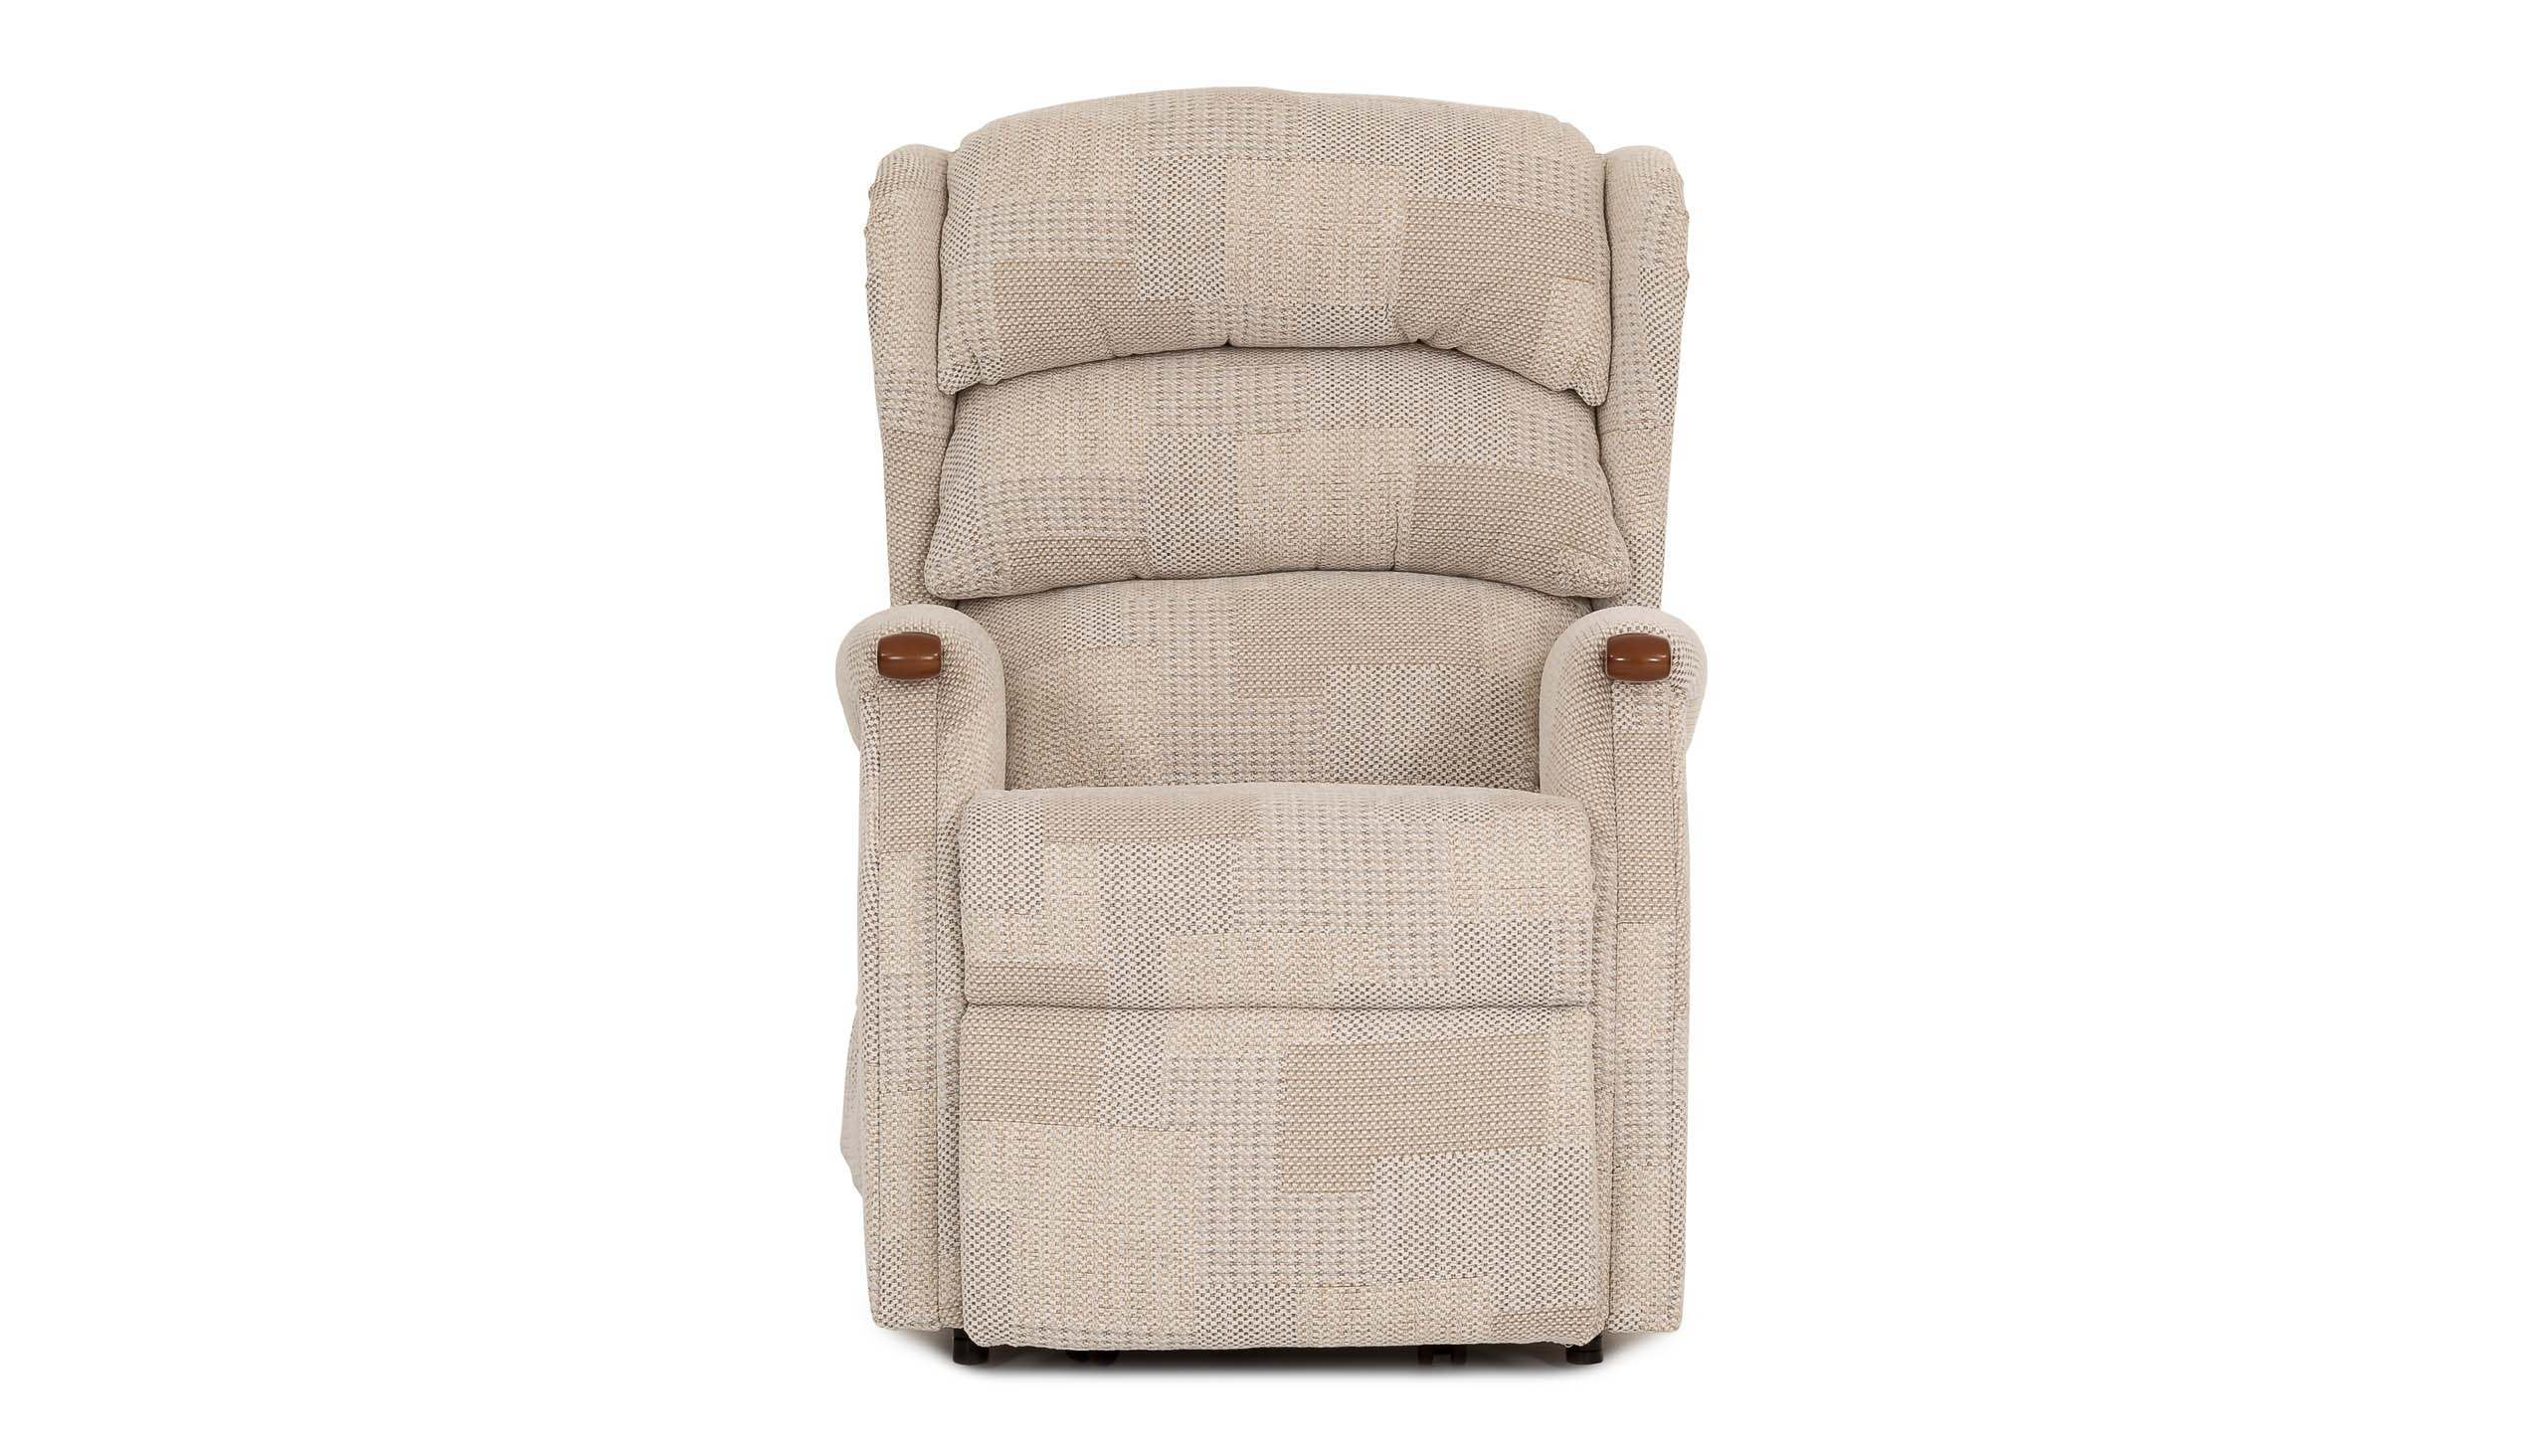 Celebrity Westbury power Recliner Chair with remote - AHF Furniture & Carpets